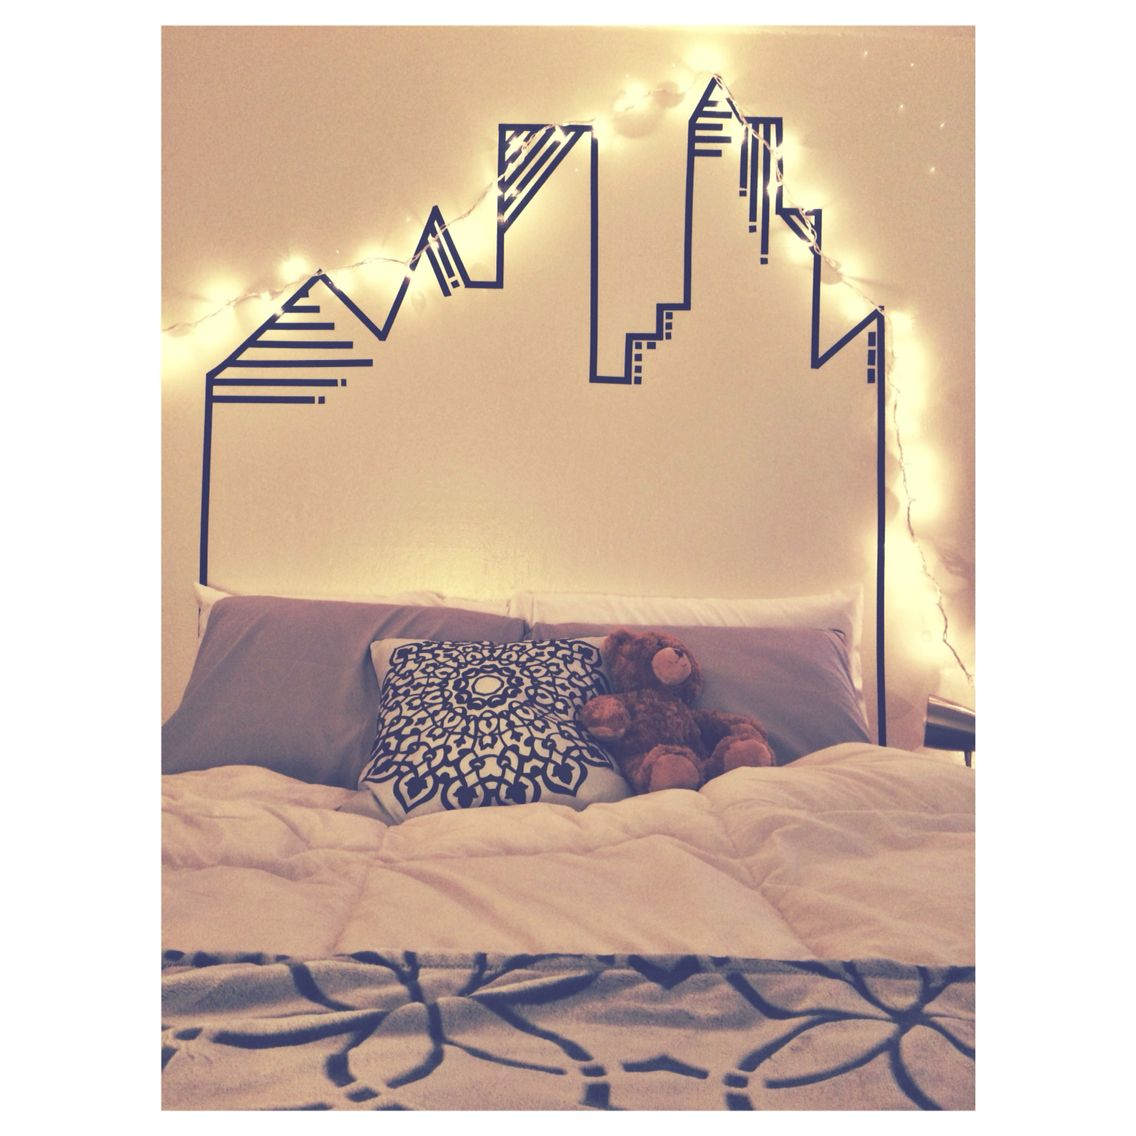 Washi tape skyline headboard wall decoration | A whole new world ...